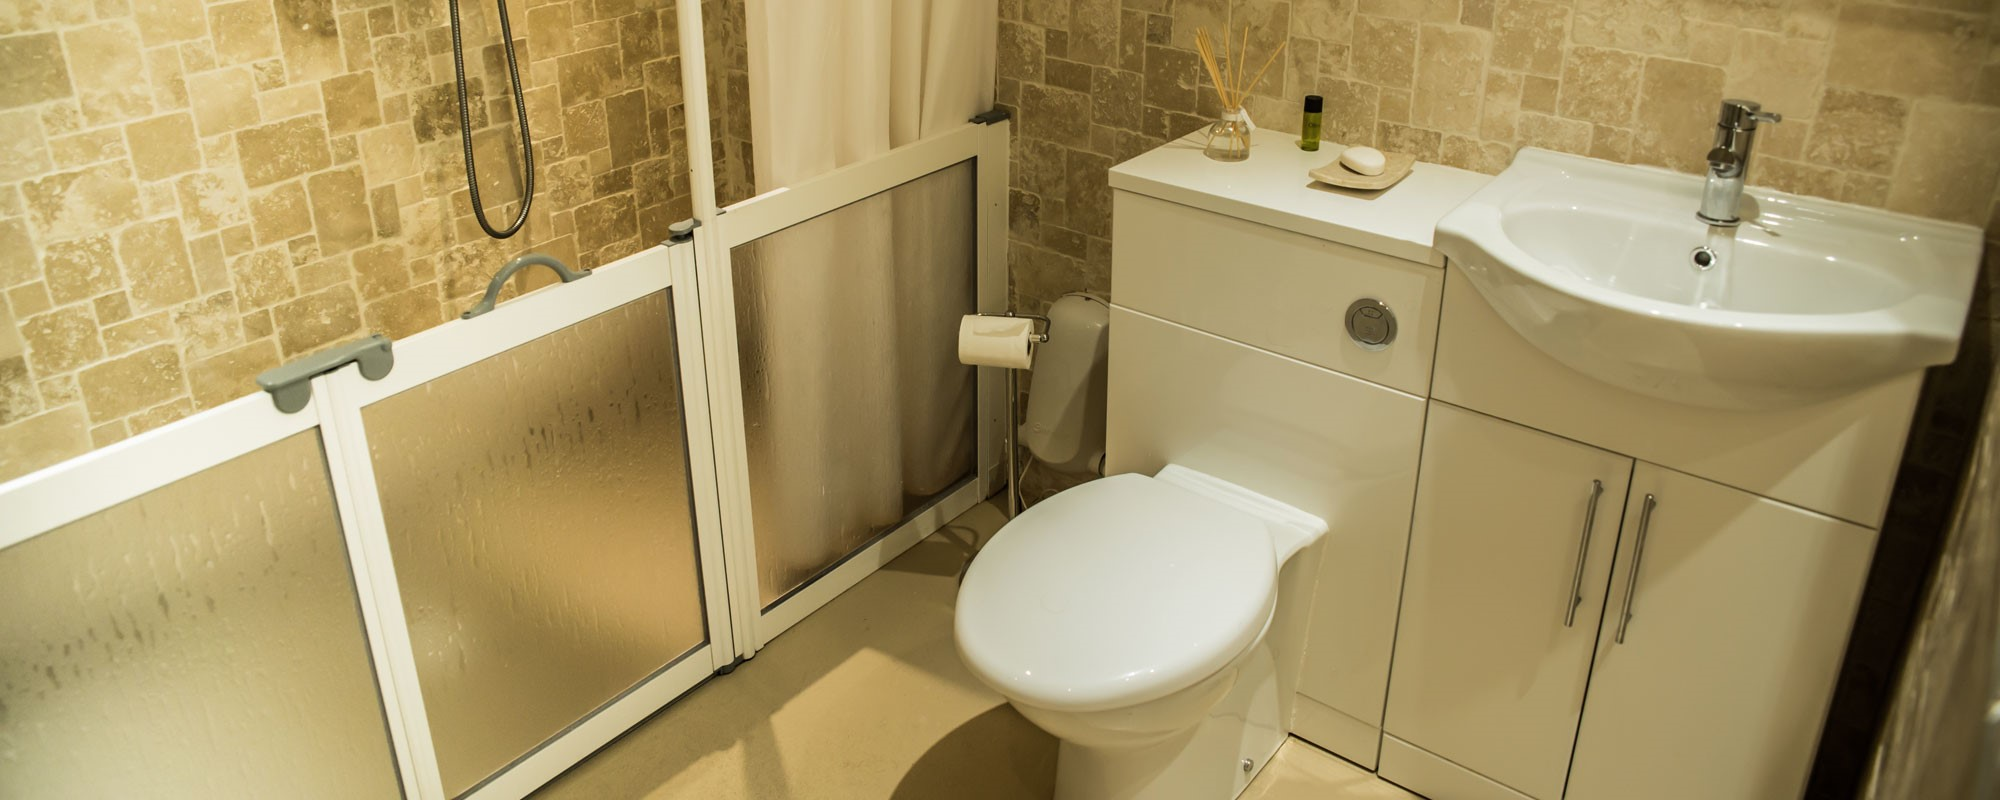 Disabled Property Adaptations Pembrokeshire West Wales